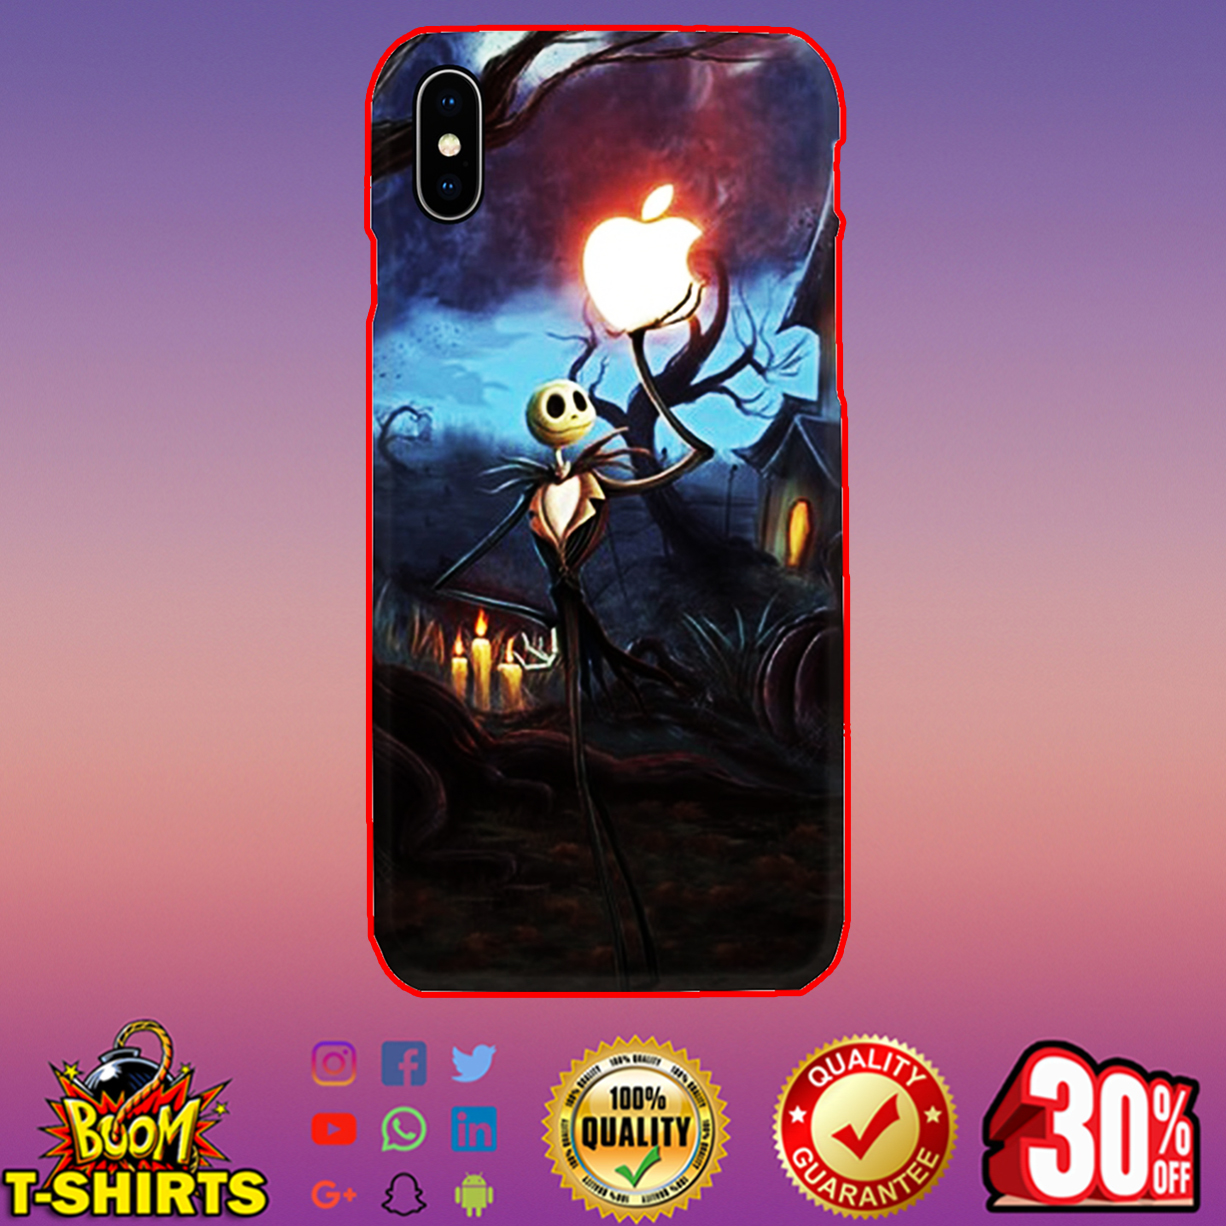 Jack Skellington holding Apple phone case - iphone X case